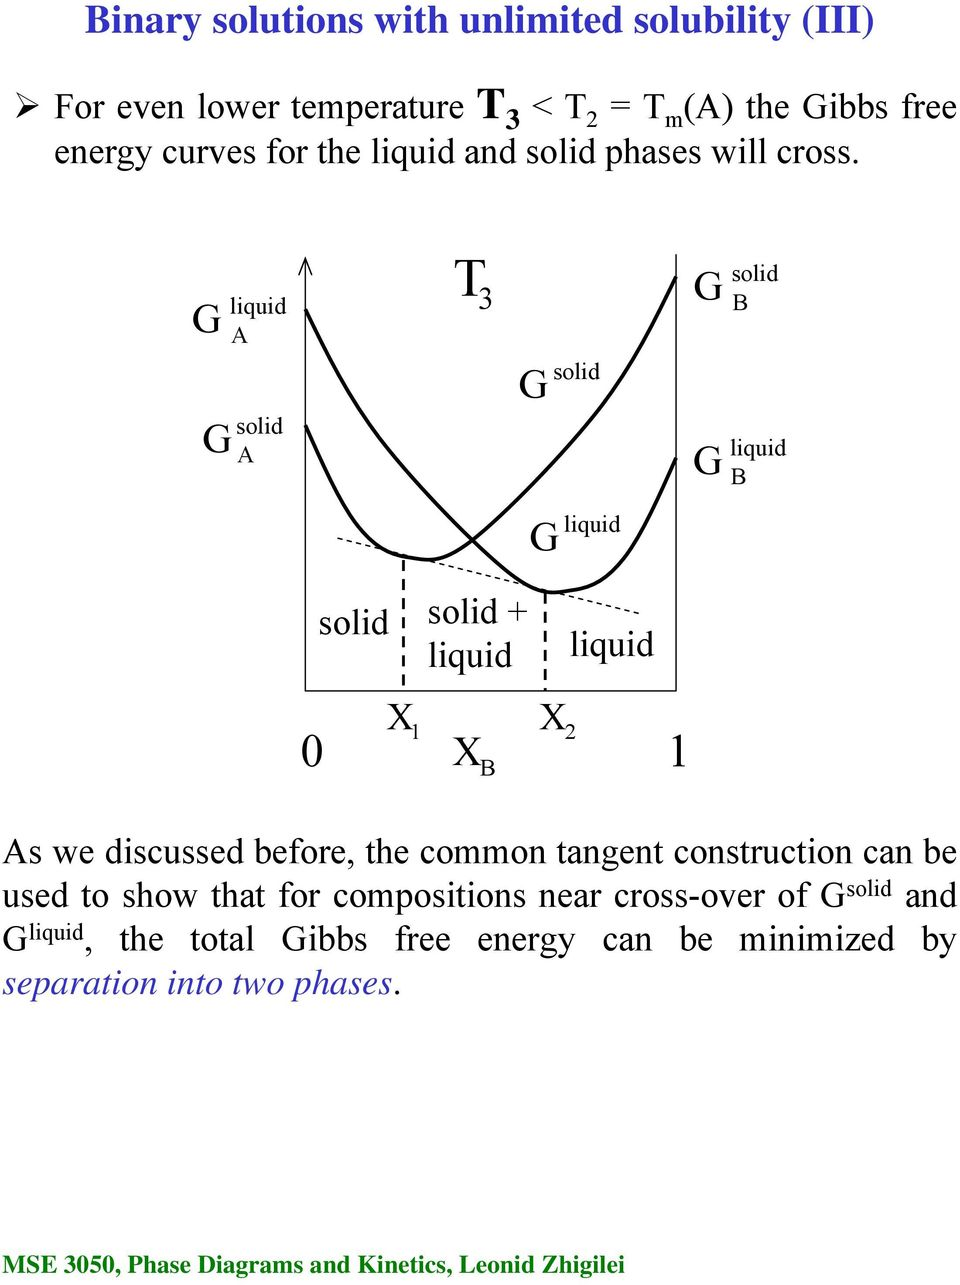 Binary Phase Diagrams Pdf Free Energy Diagram A Solid T 3 0 X1 2 X 1 As We